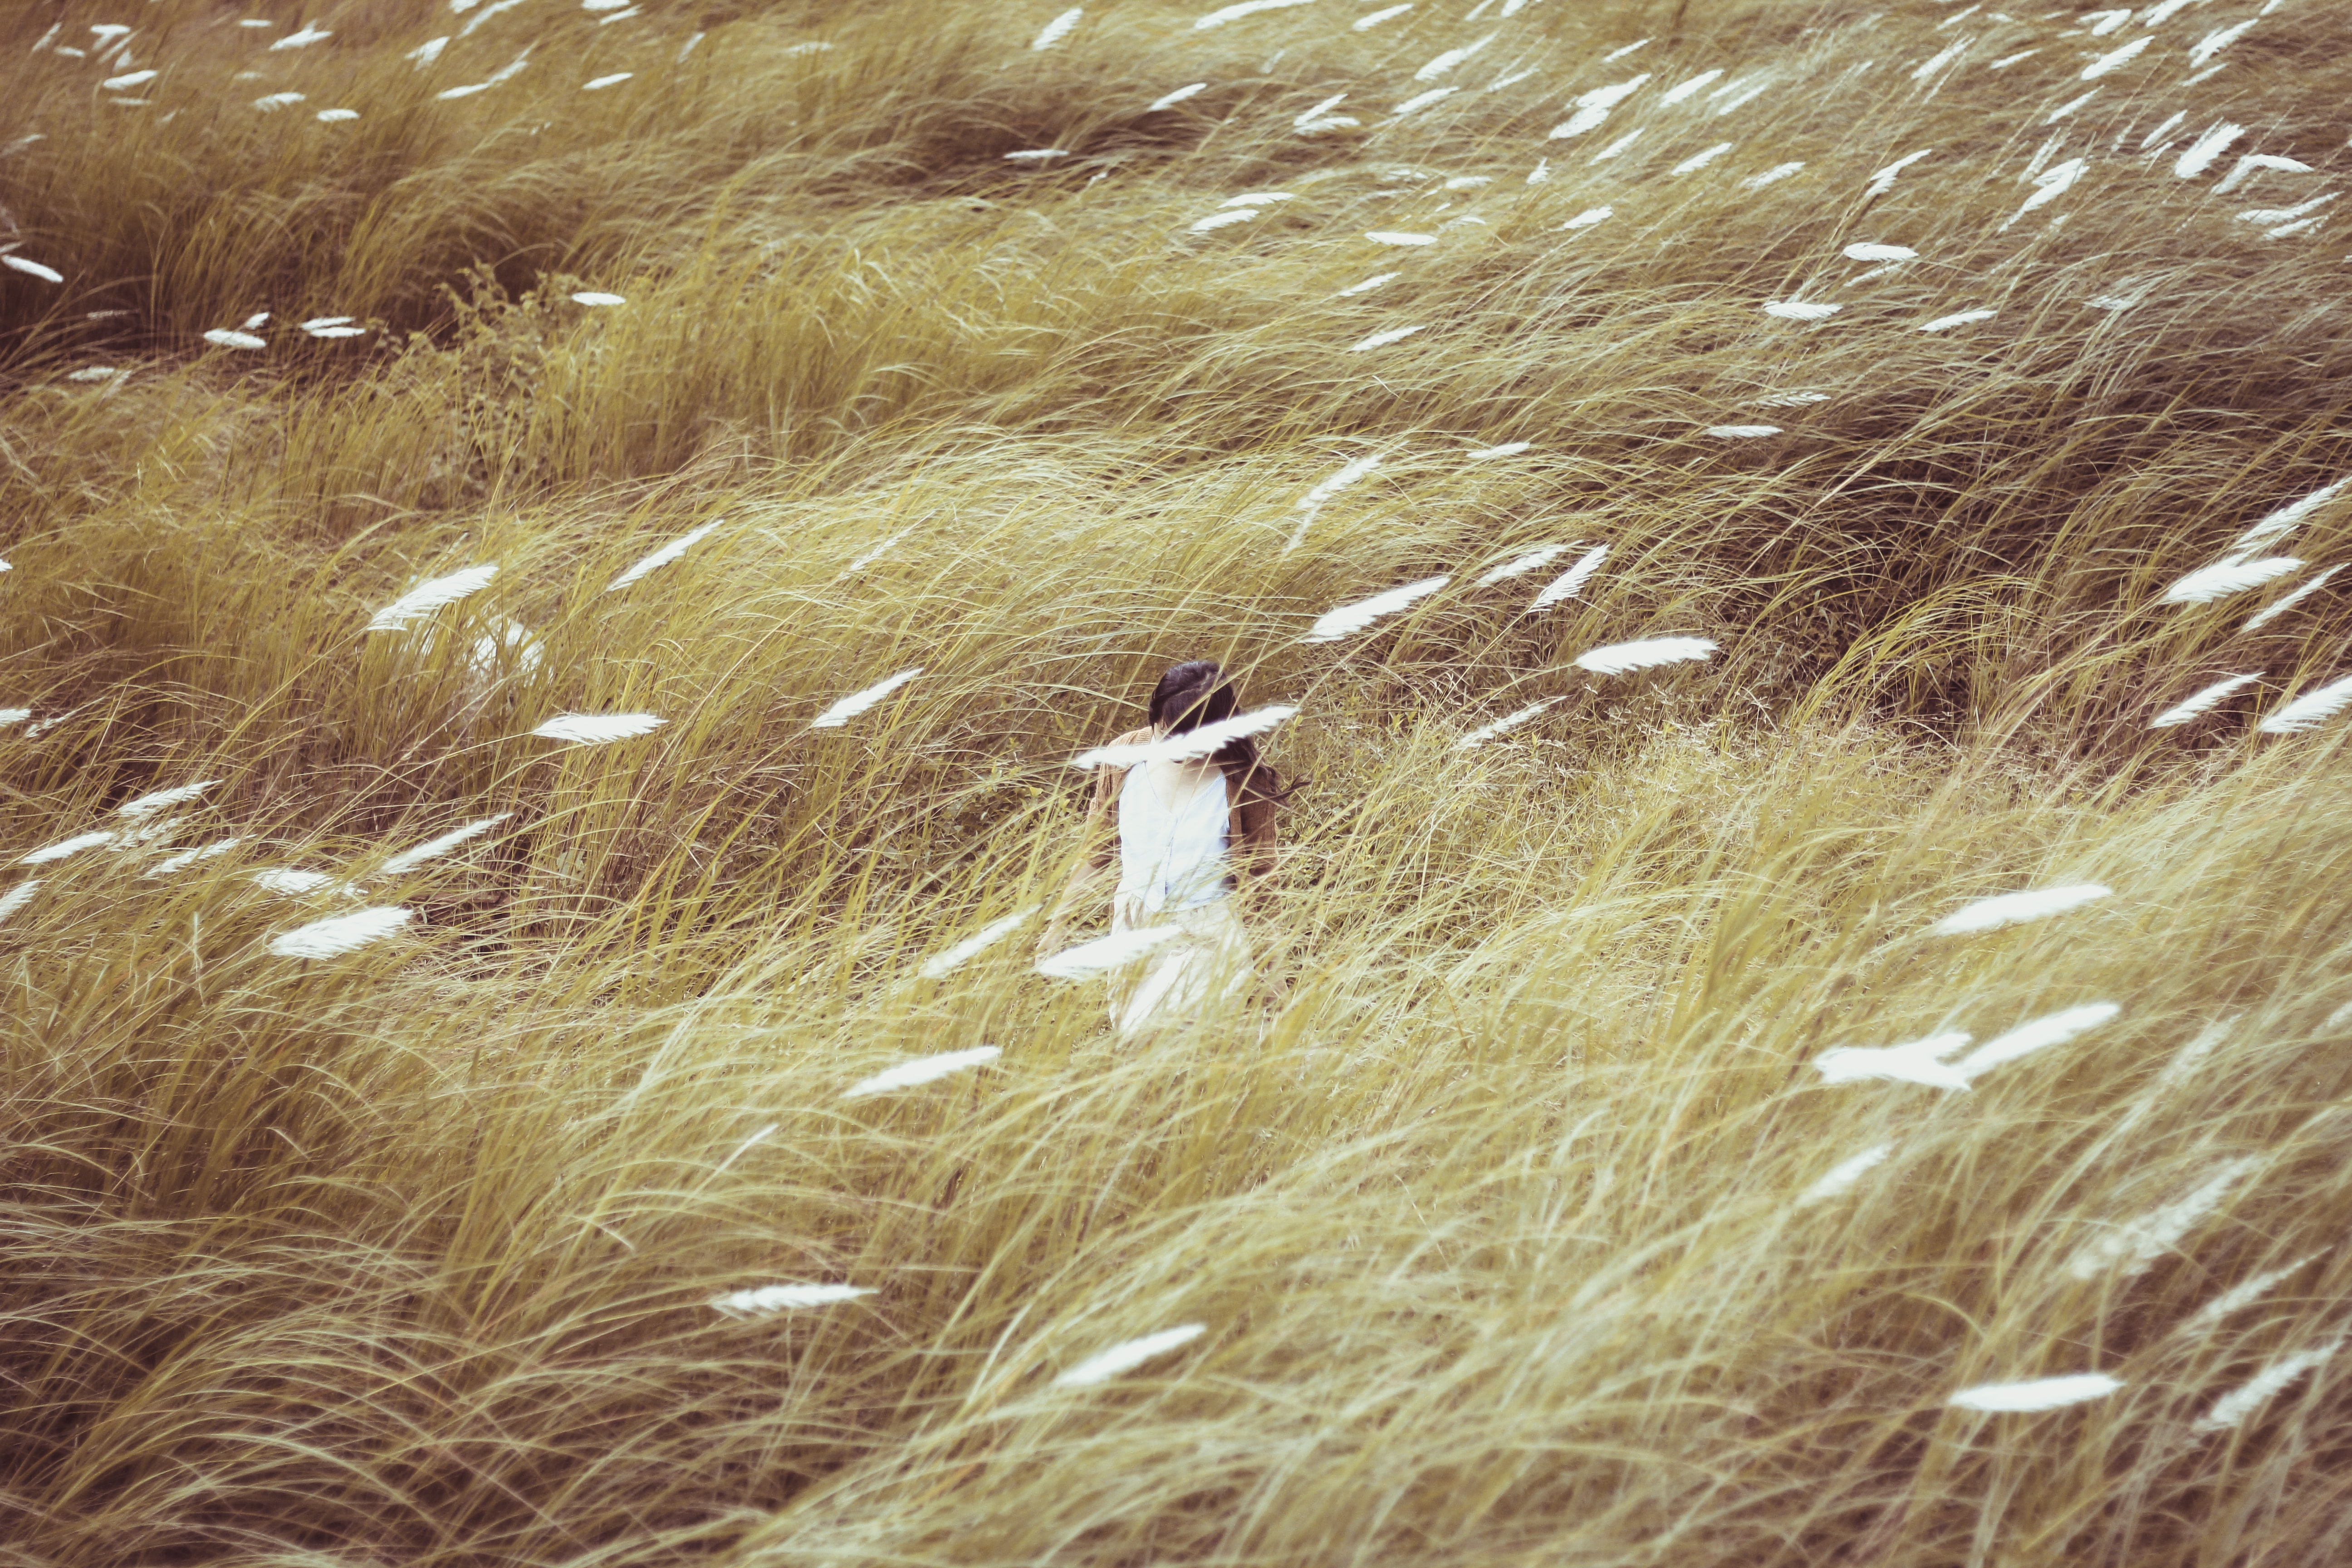 woman wearing dress standing on ground and surrounded by grass